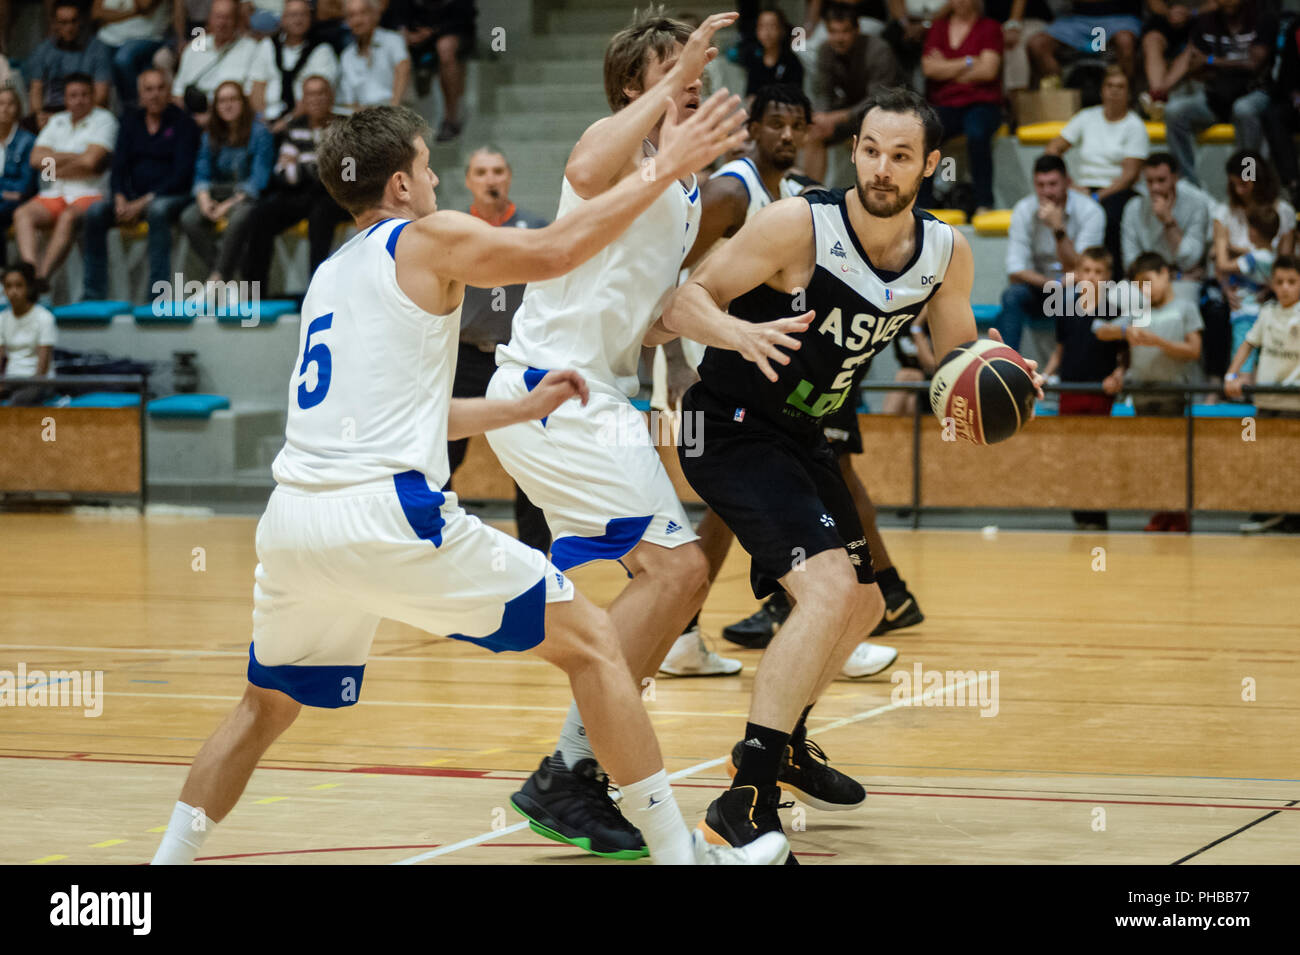 Belleville-sur-Saône, France. 31st August 2018.  Ain Star Games is a preparation tournament - The match was against ASVEL and KK Mornar Bar (88-68). Miro Bilan with the ball. Credit: FRANCK CHAPOLARD/Alamy Live News - Stock Image